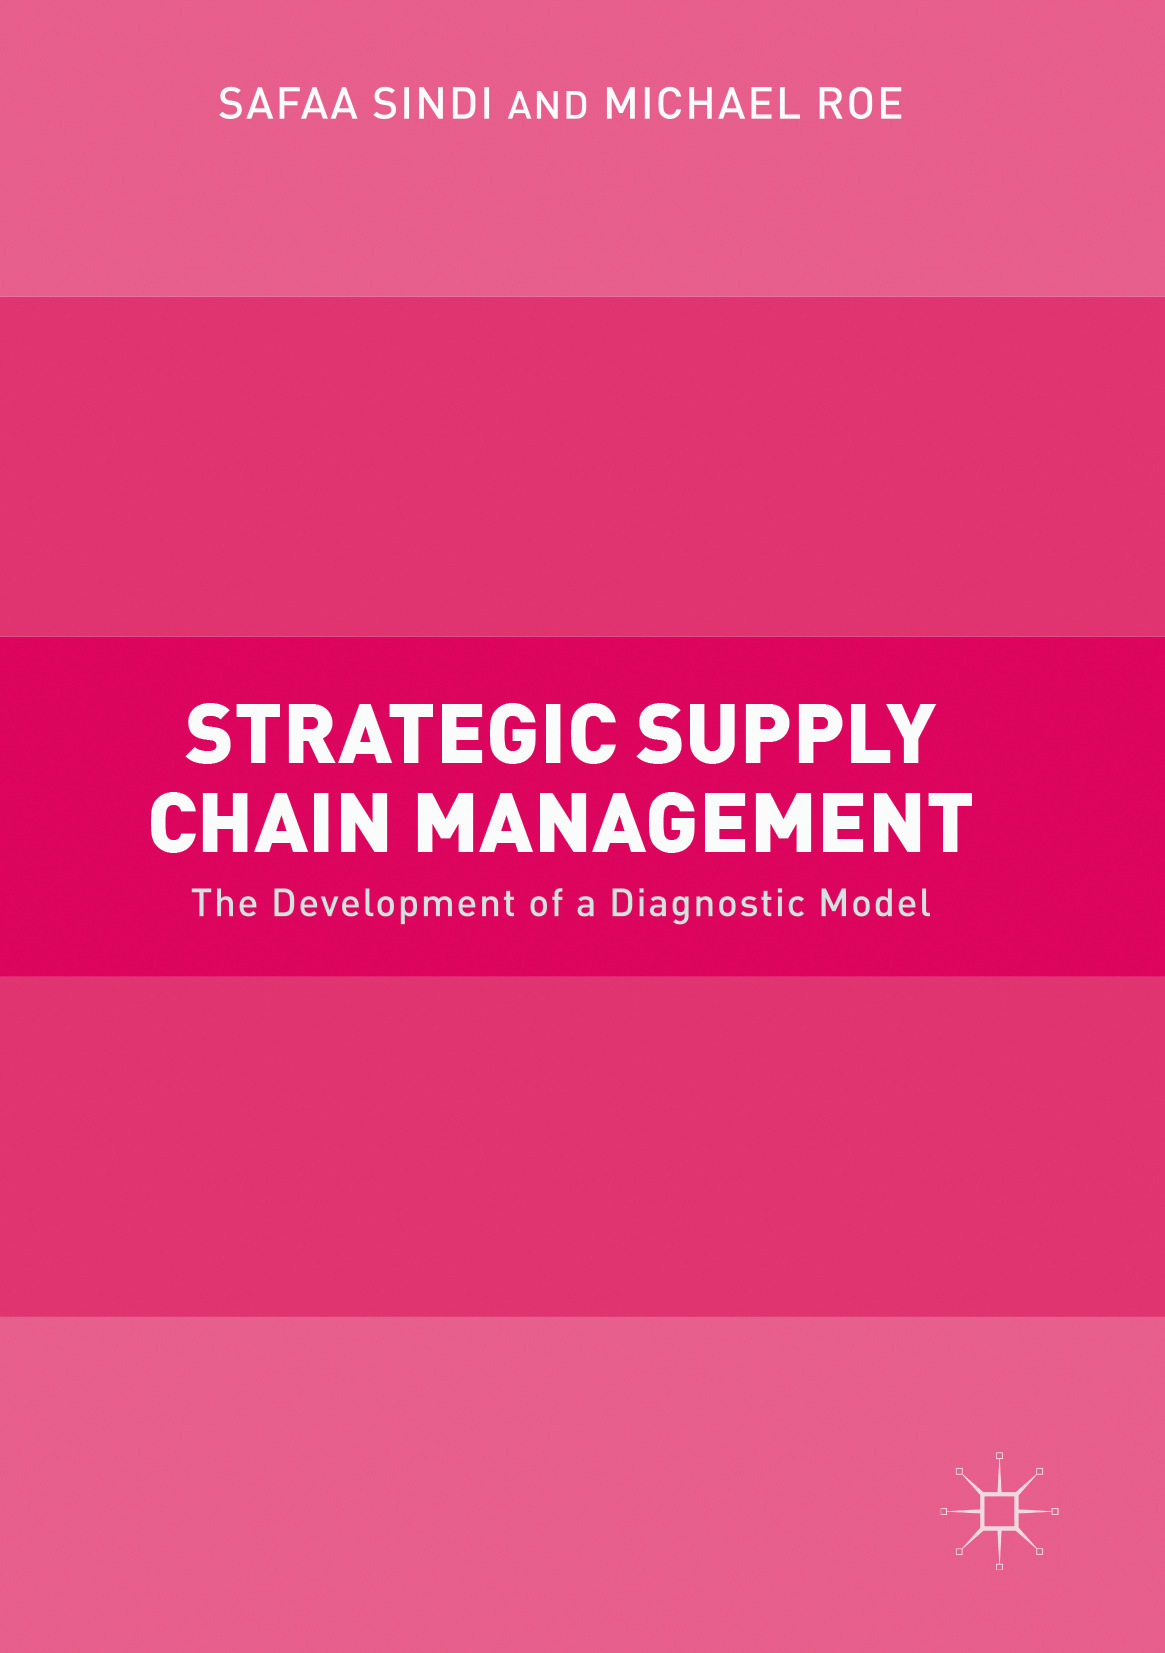 Roe, Michael - Strategic Supply Chain Management, ebook